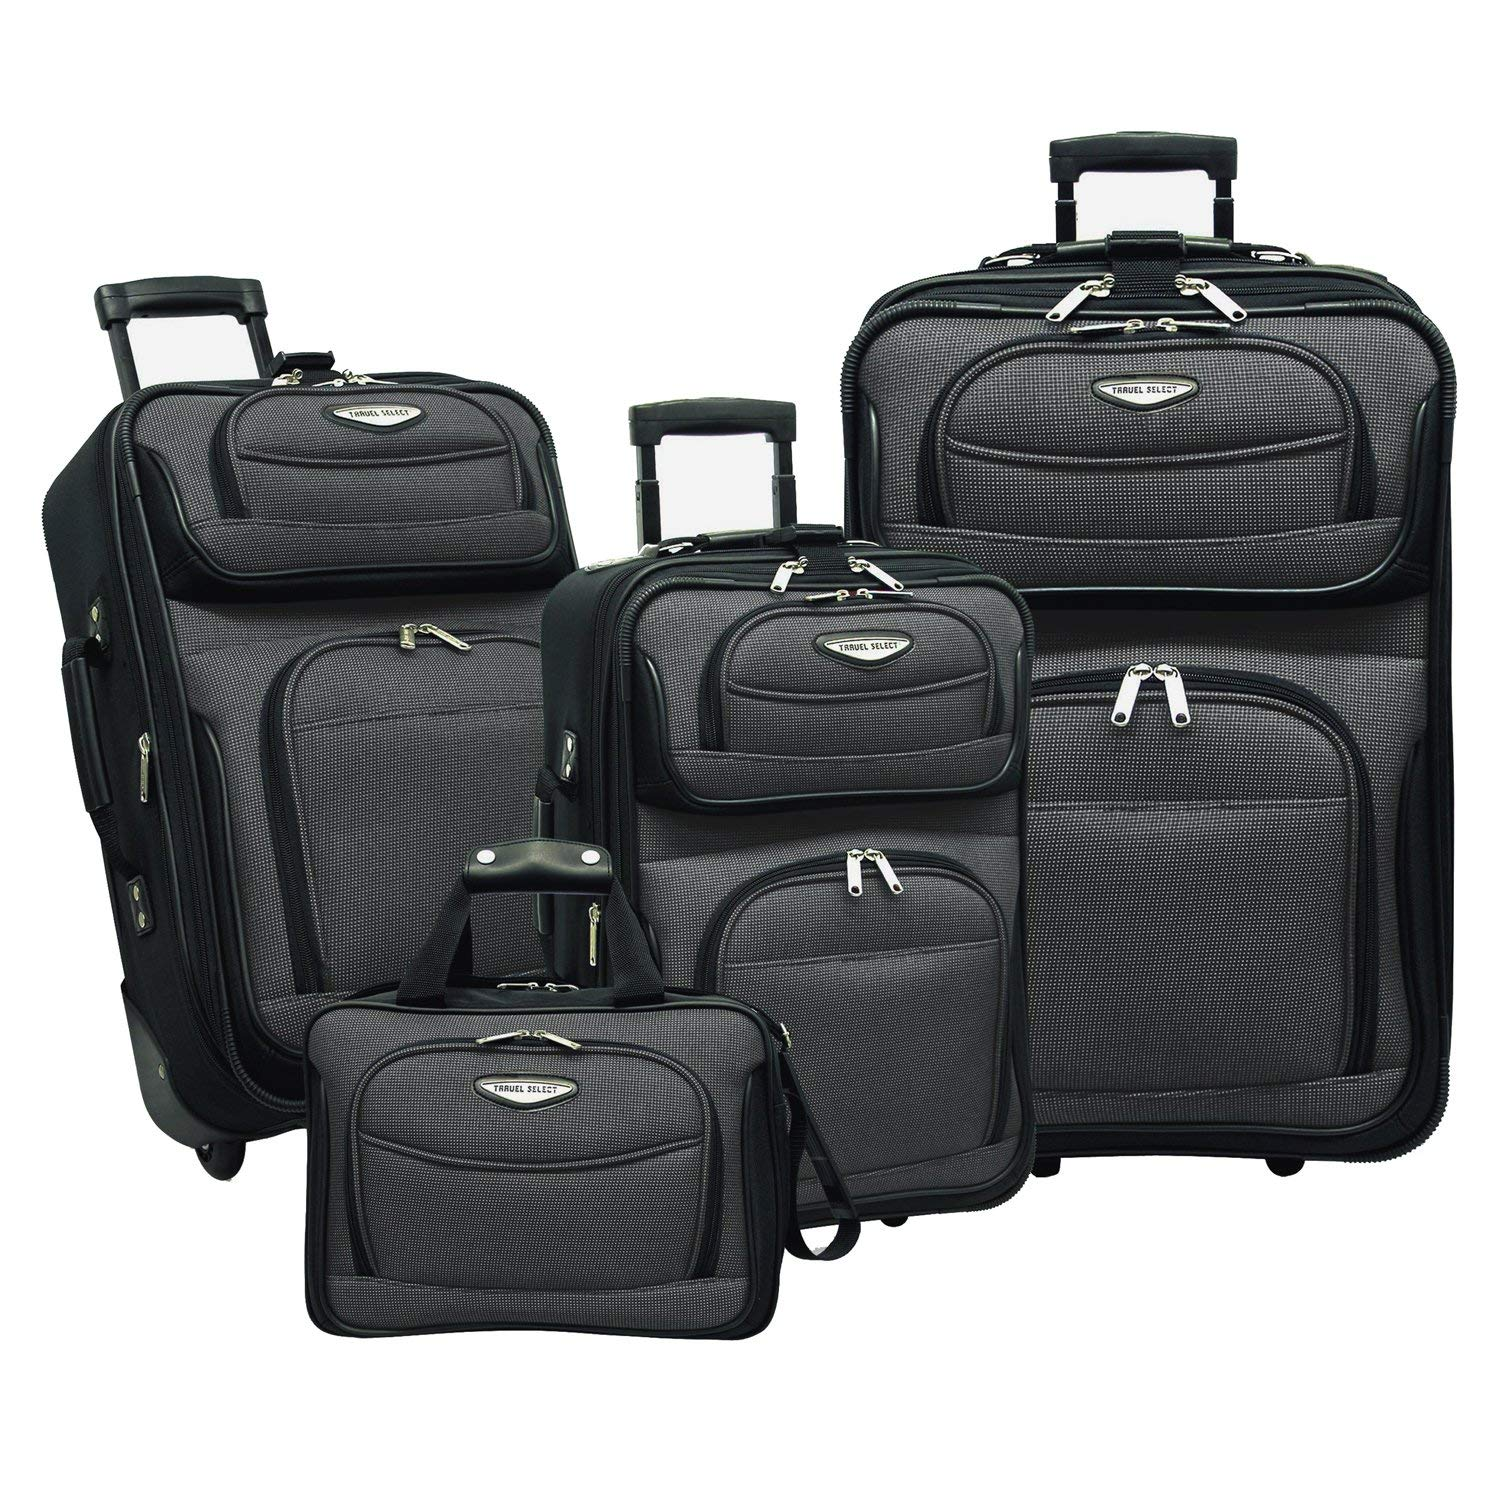 Top 10 Best Travel Luggage Sets in 2020 Reviews & Buyer's Guide